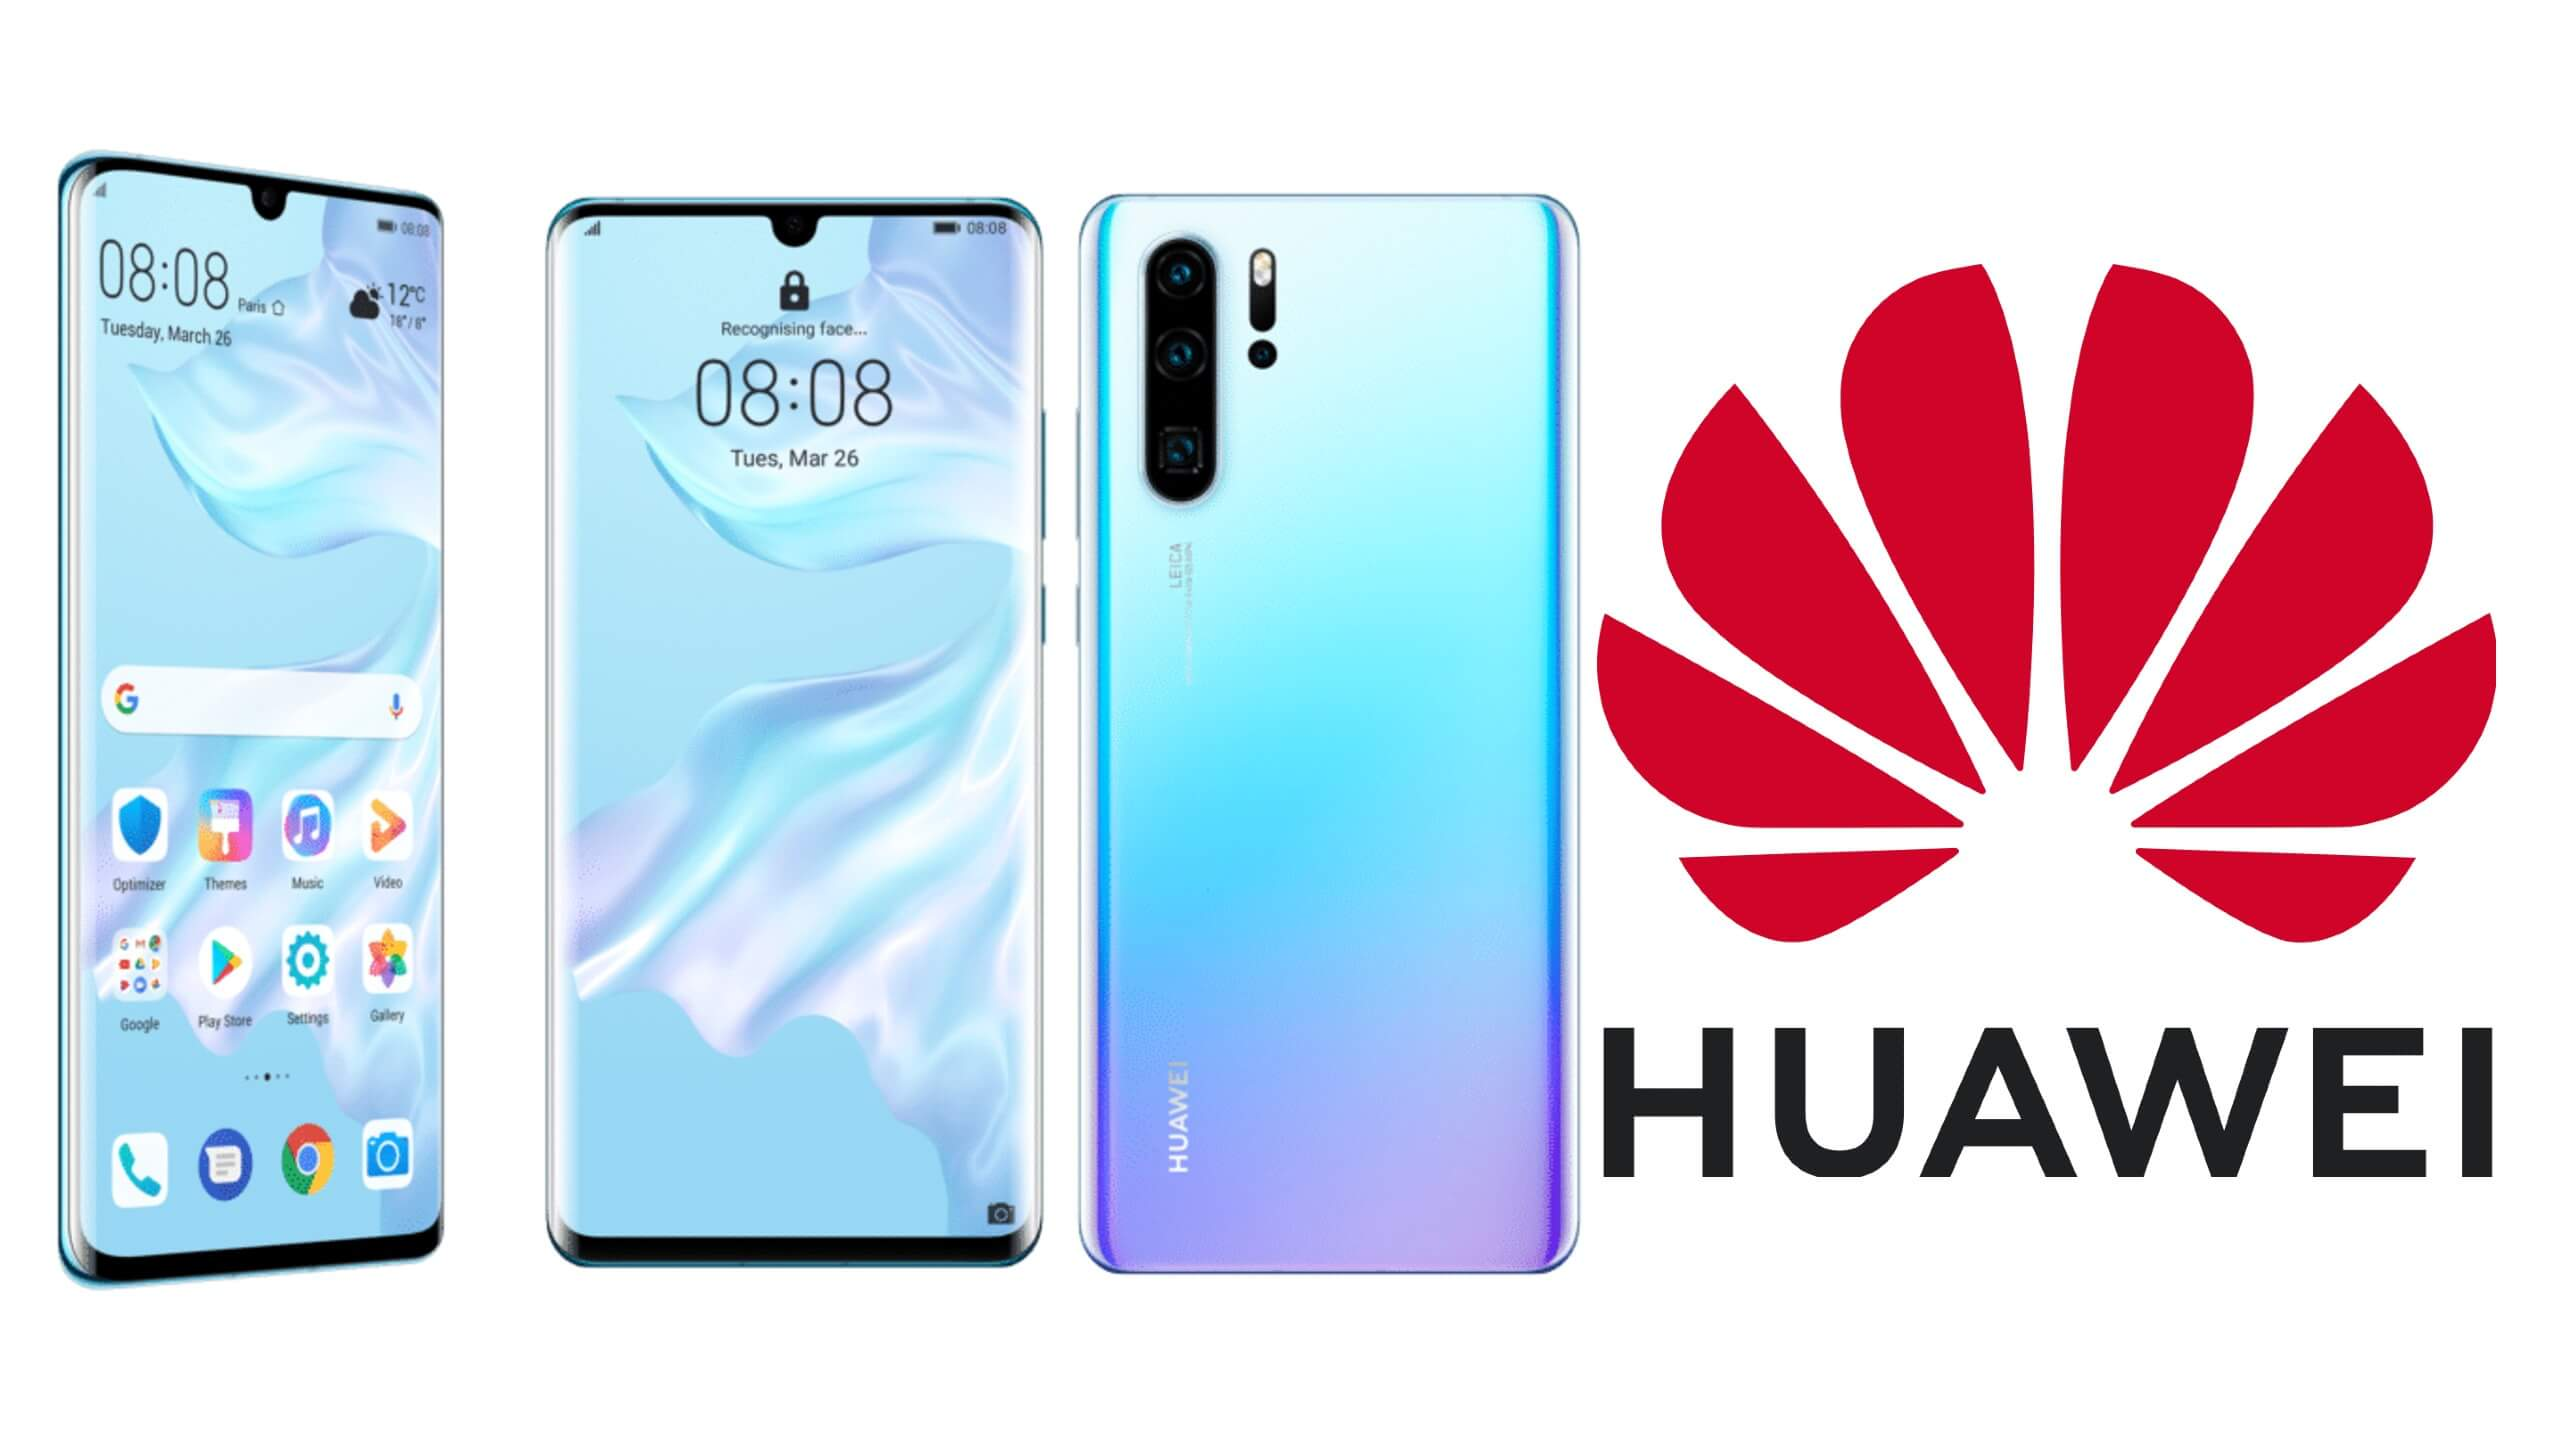 Recycling a Huawei mobile phone